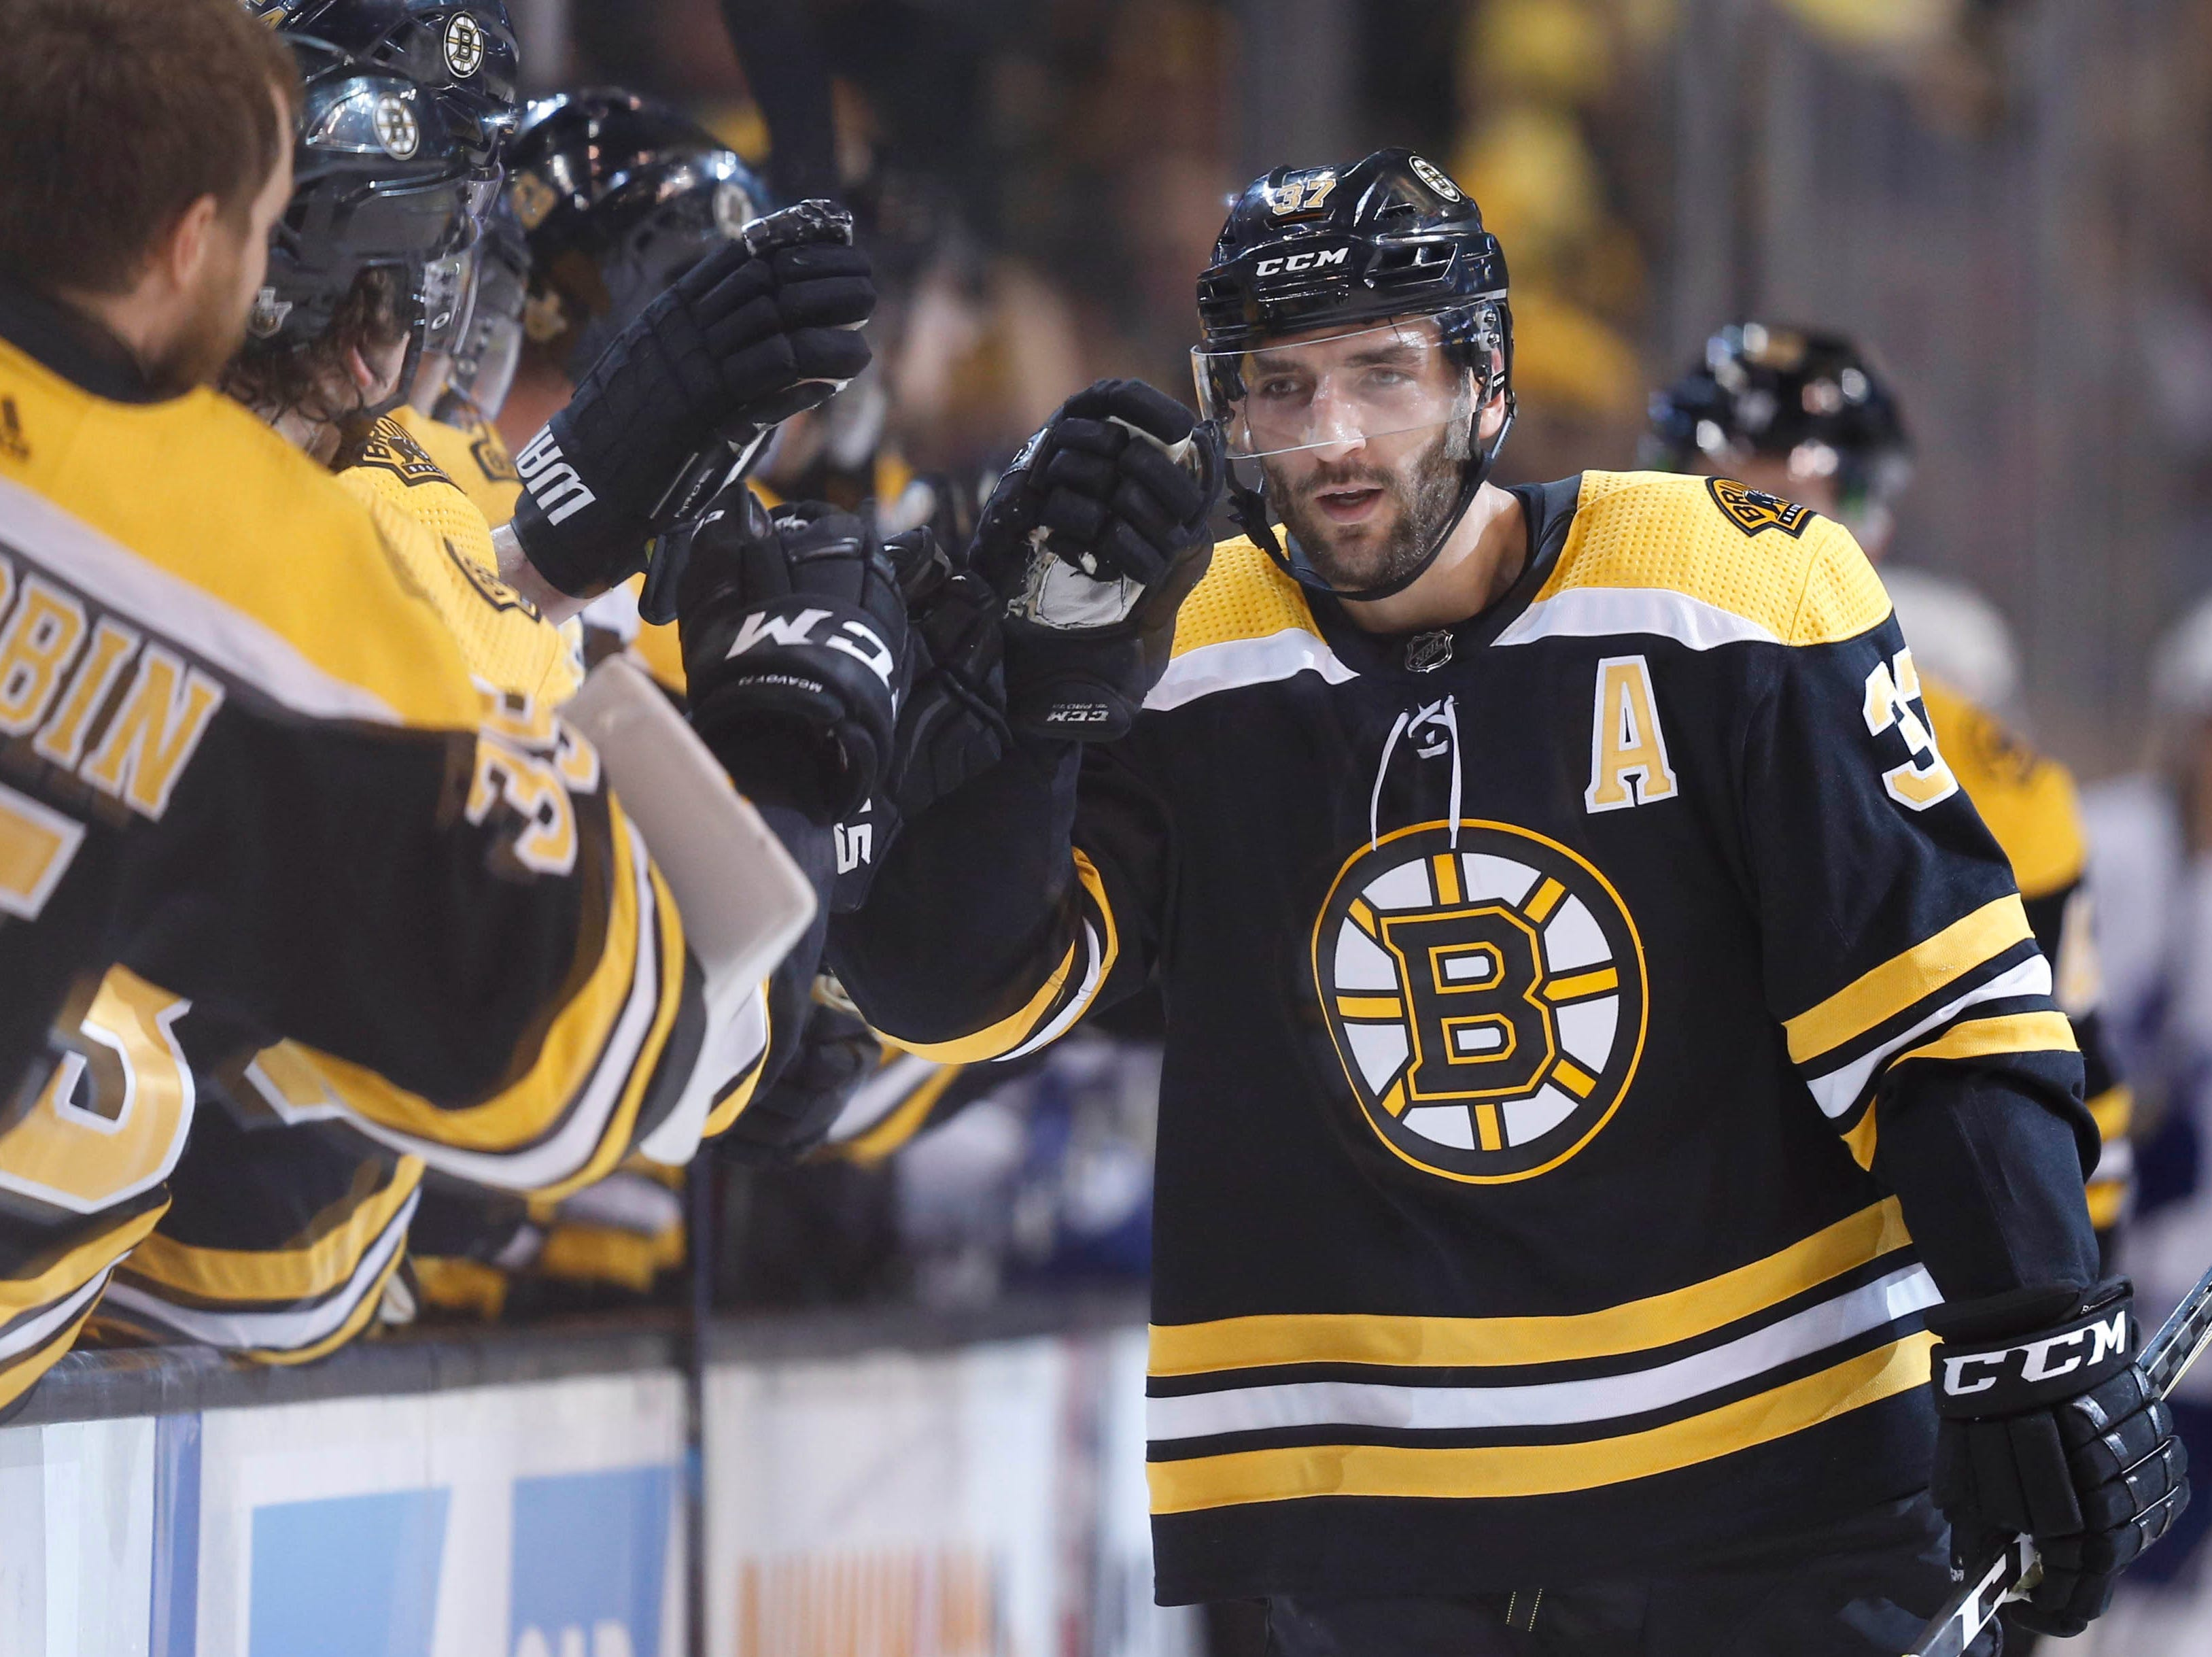 37. Patrice Bergeron (2003 to present). Also: Olaf Kolzig